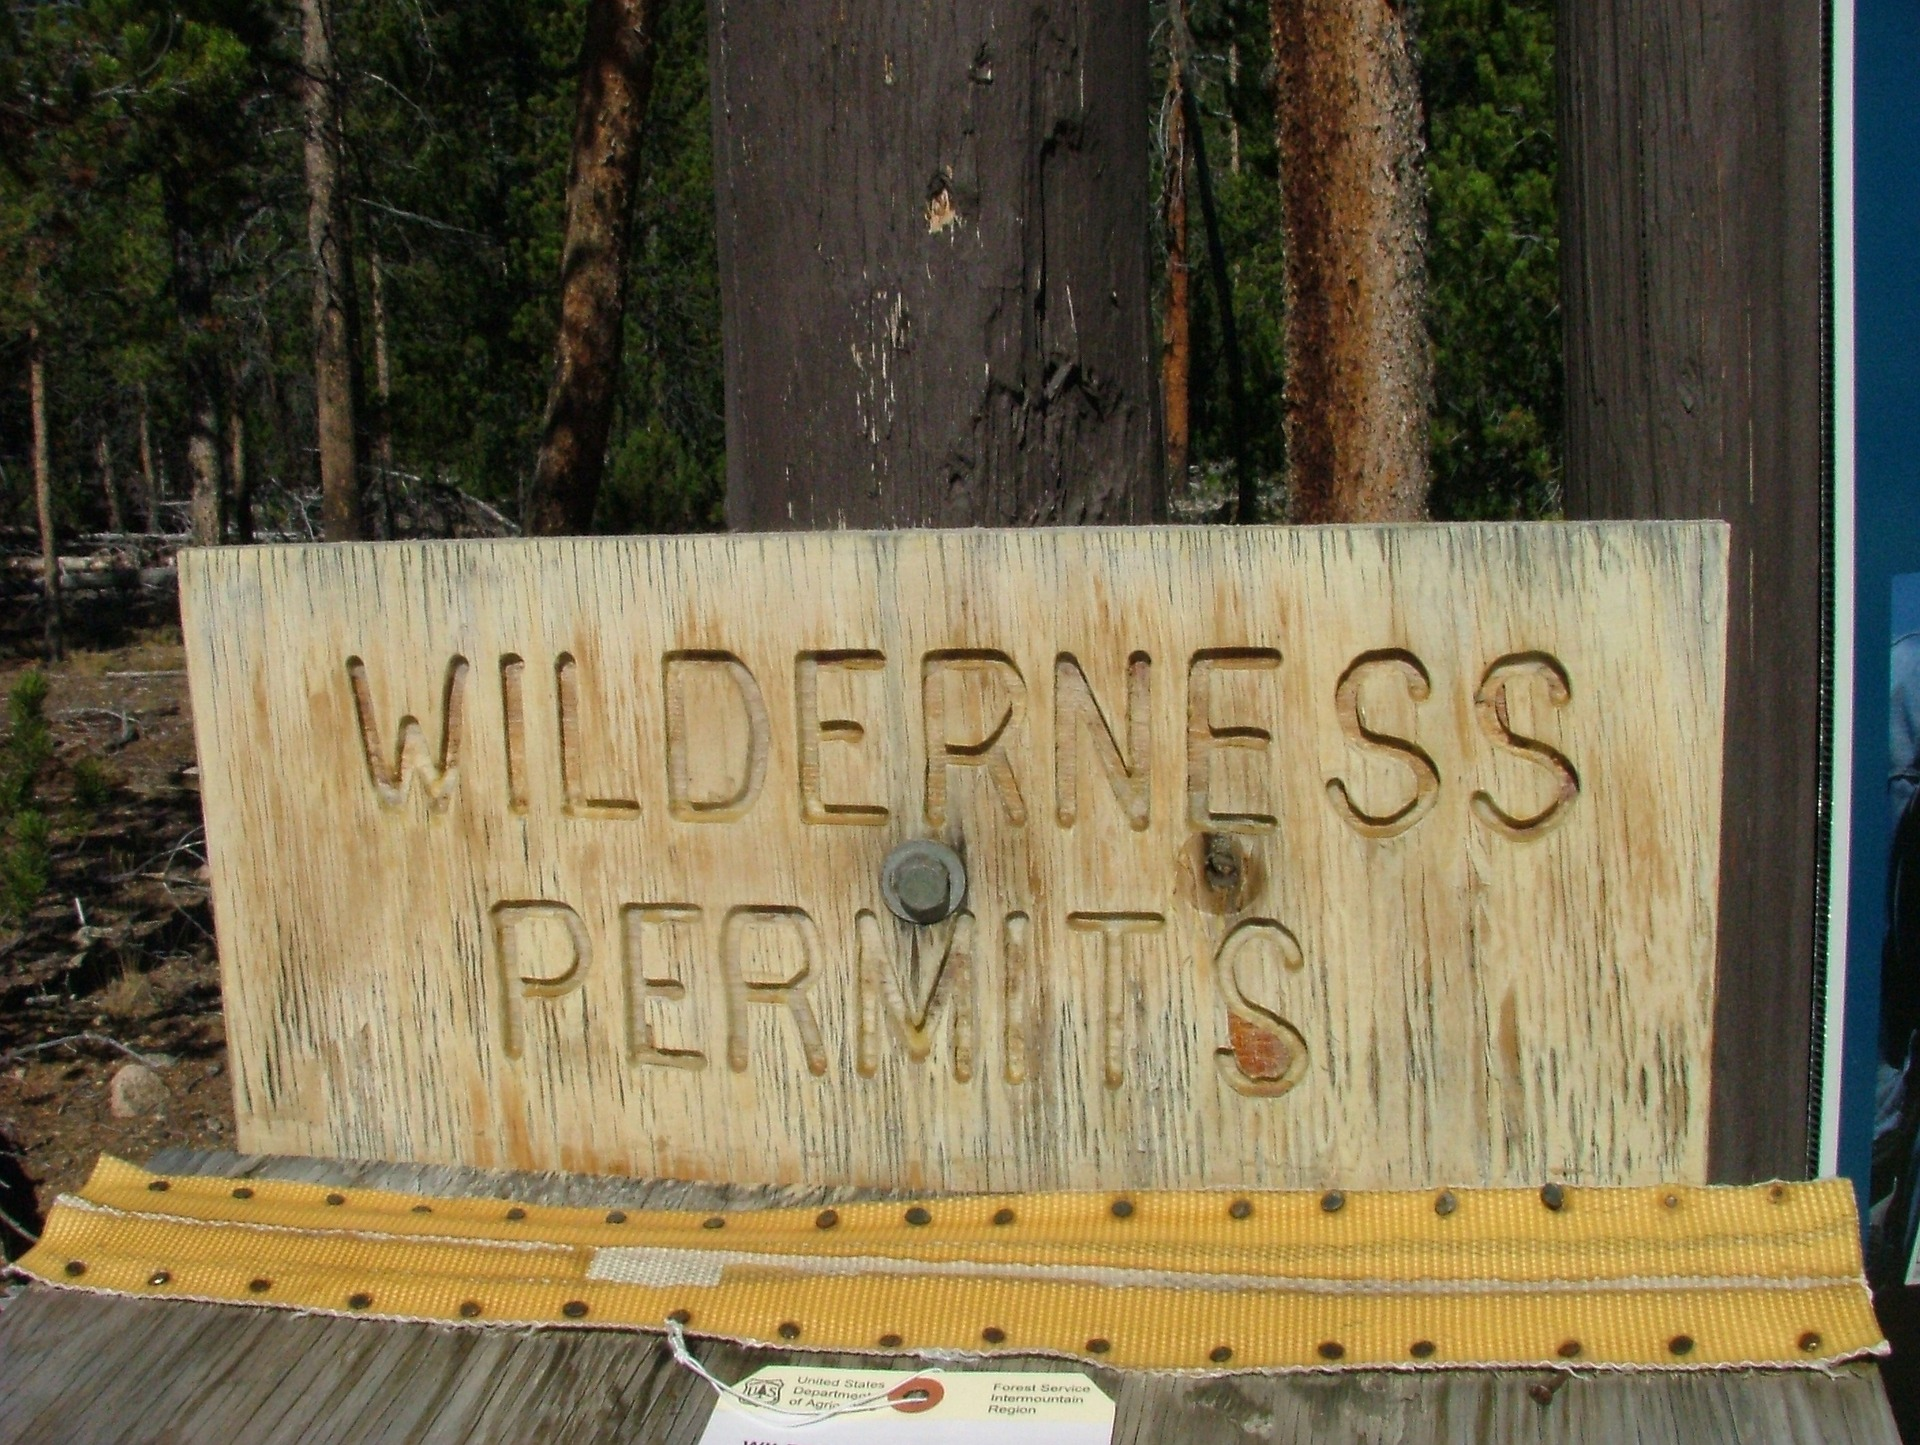 Wilderness Permits Sign